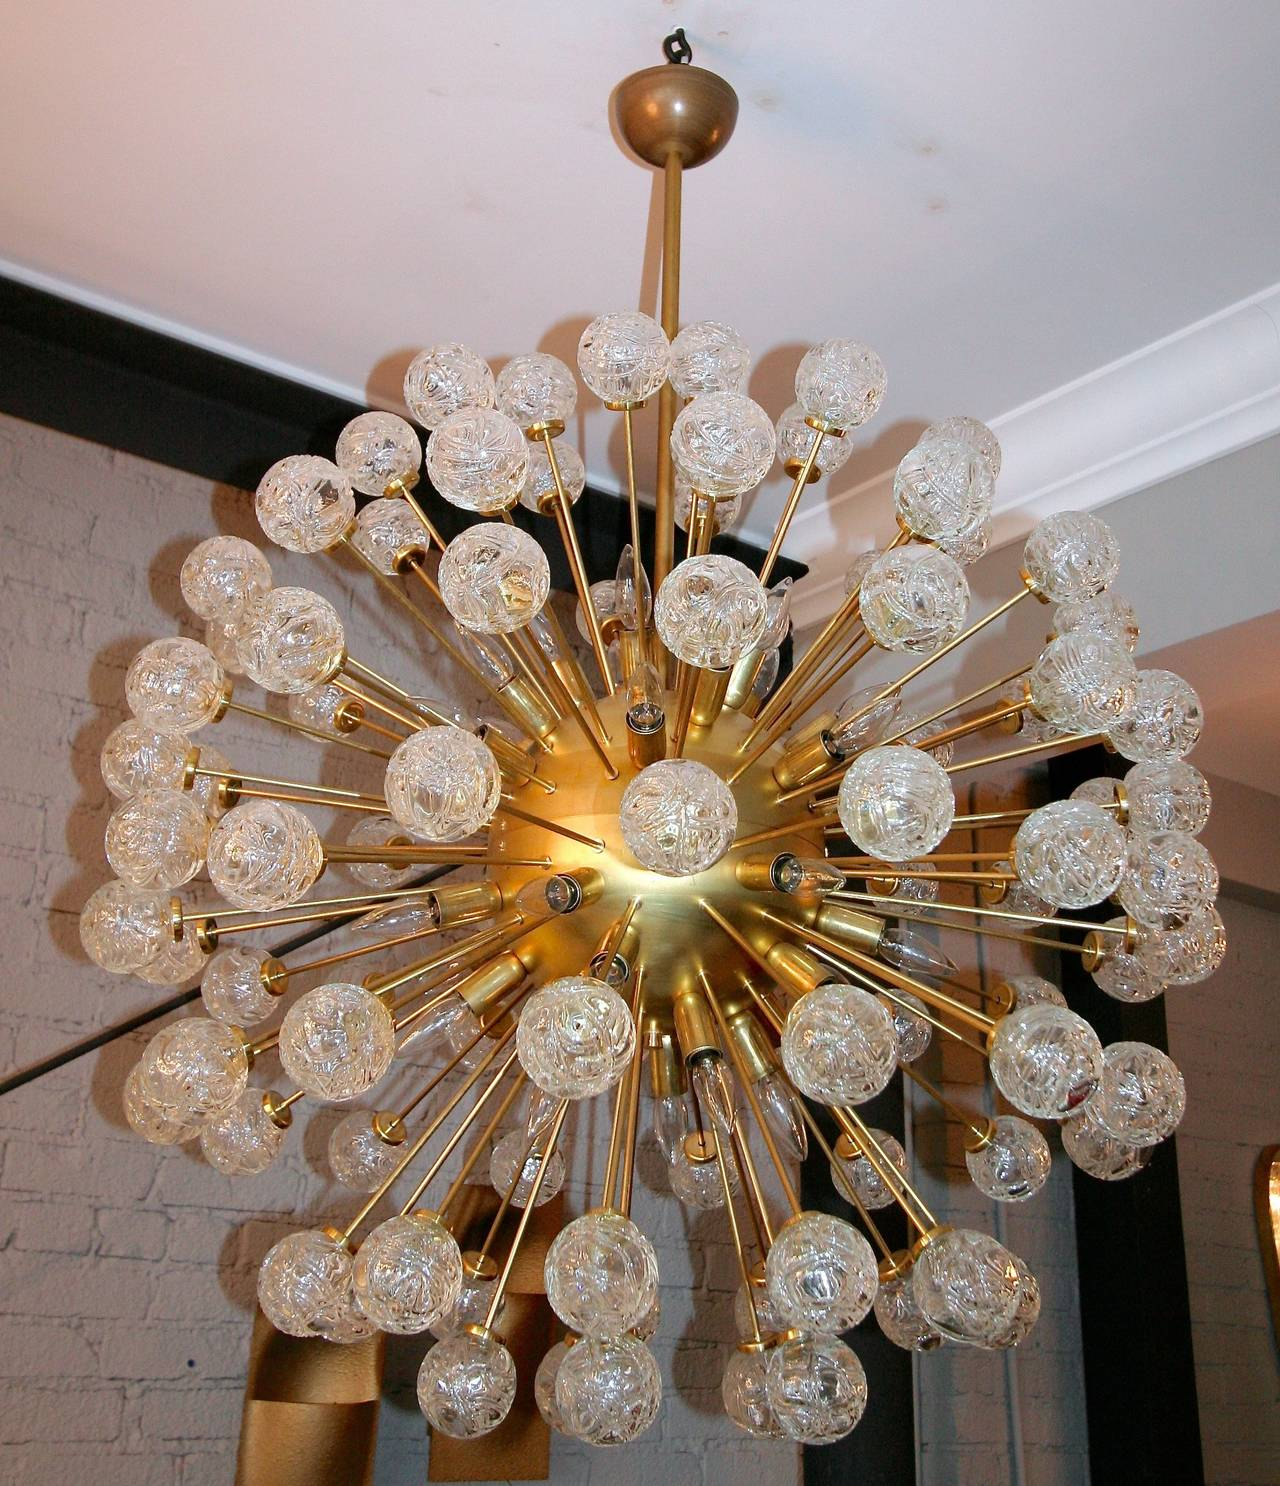 Sputnik chandelier from the 1980s with 96 Murano glass pieces in the shape of roses with 34 lights.